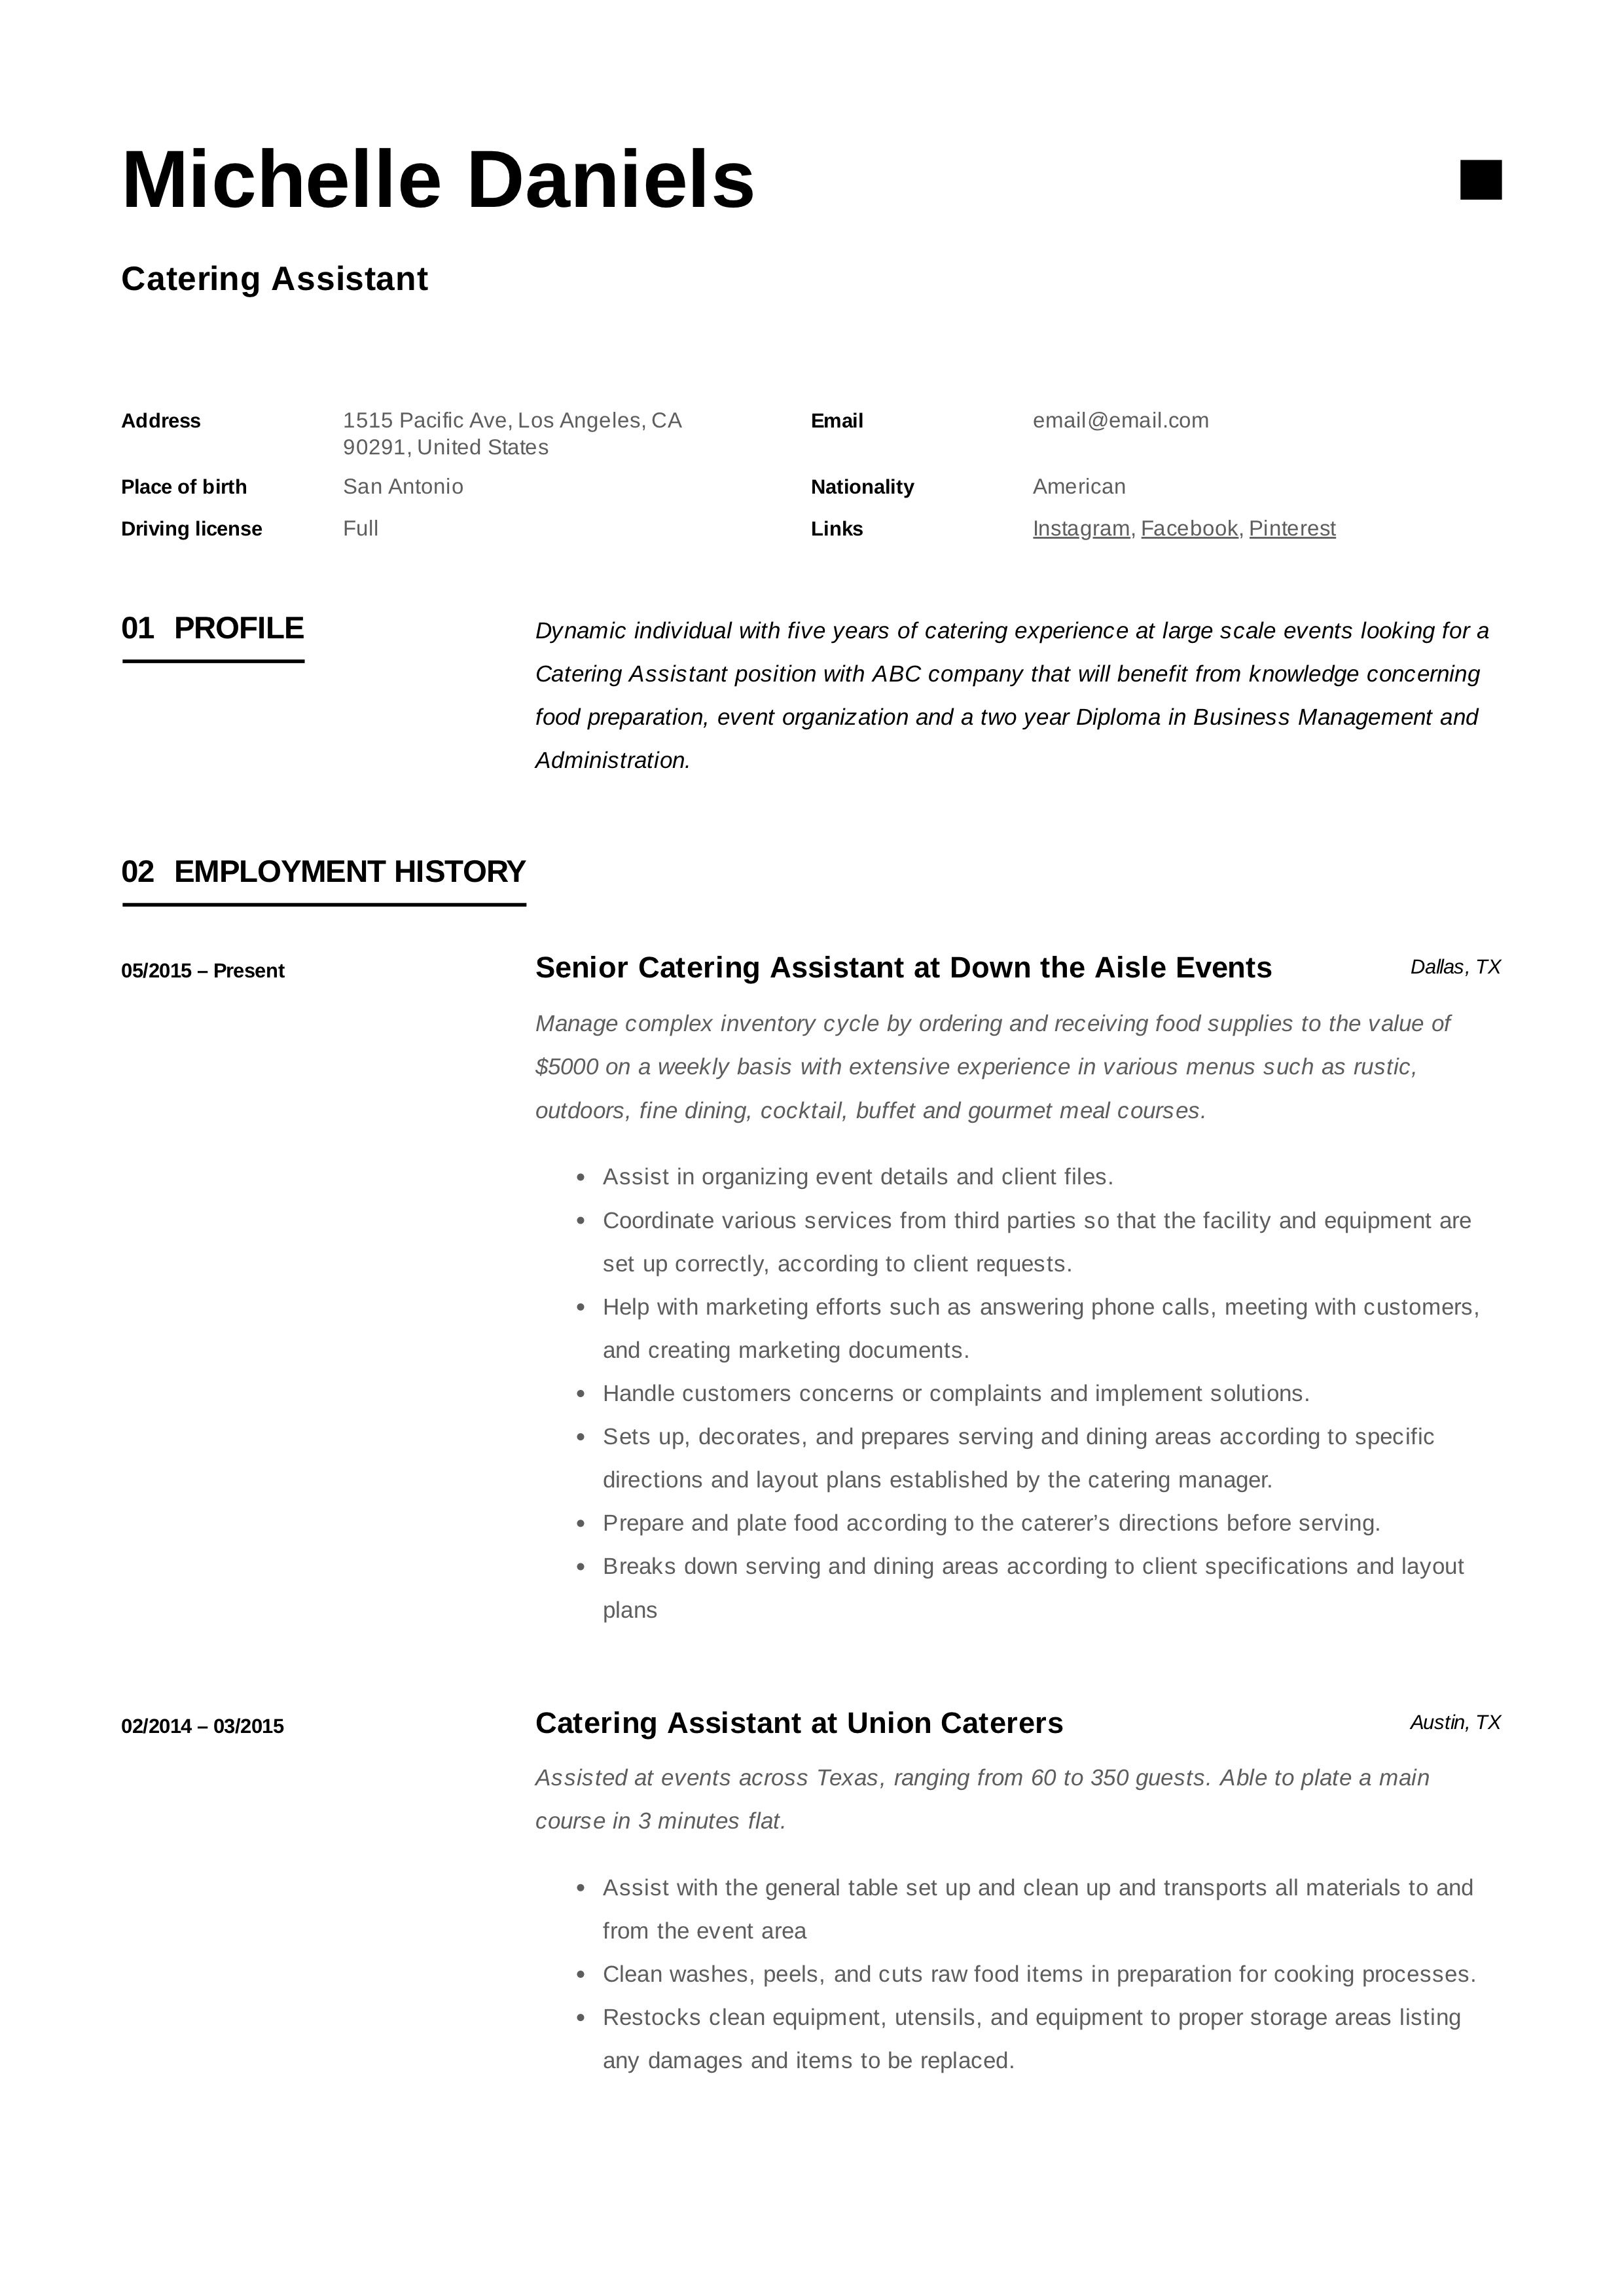 Catering Assistant Resume Caterer (10)